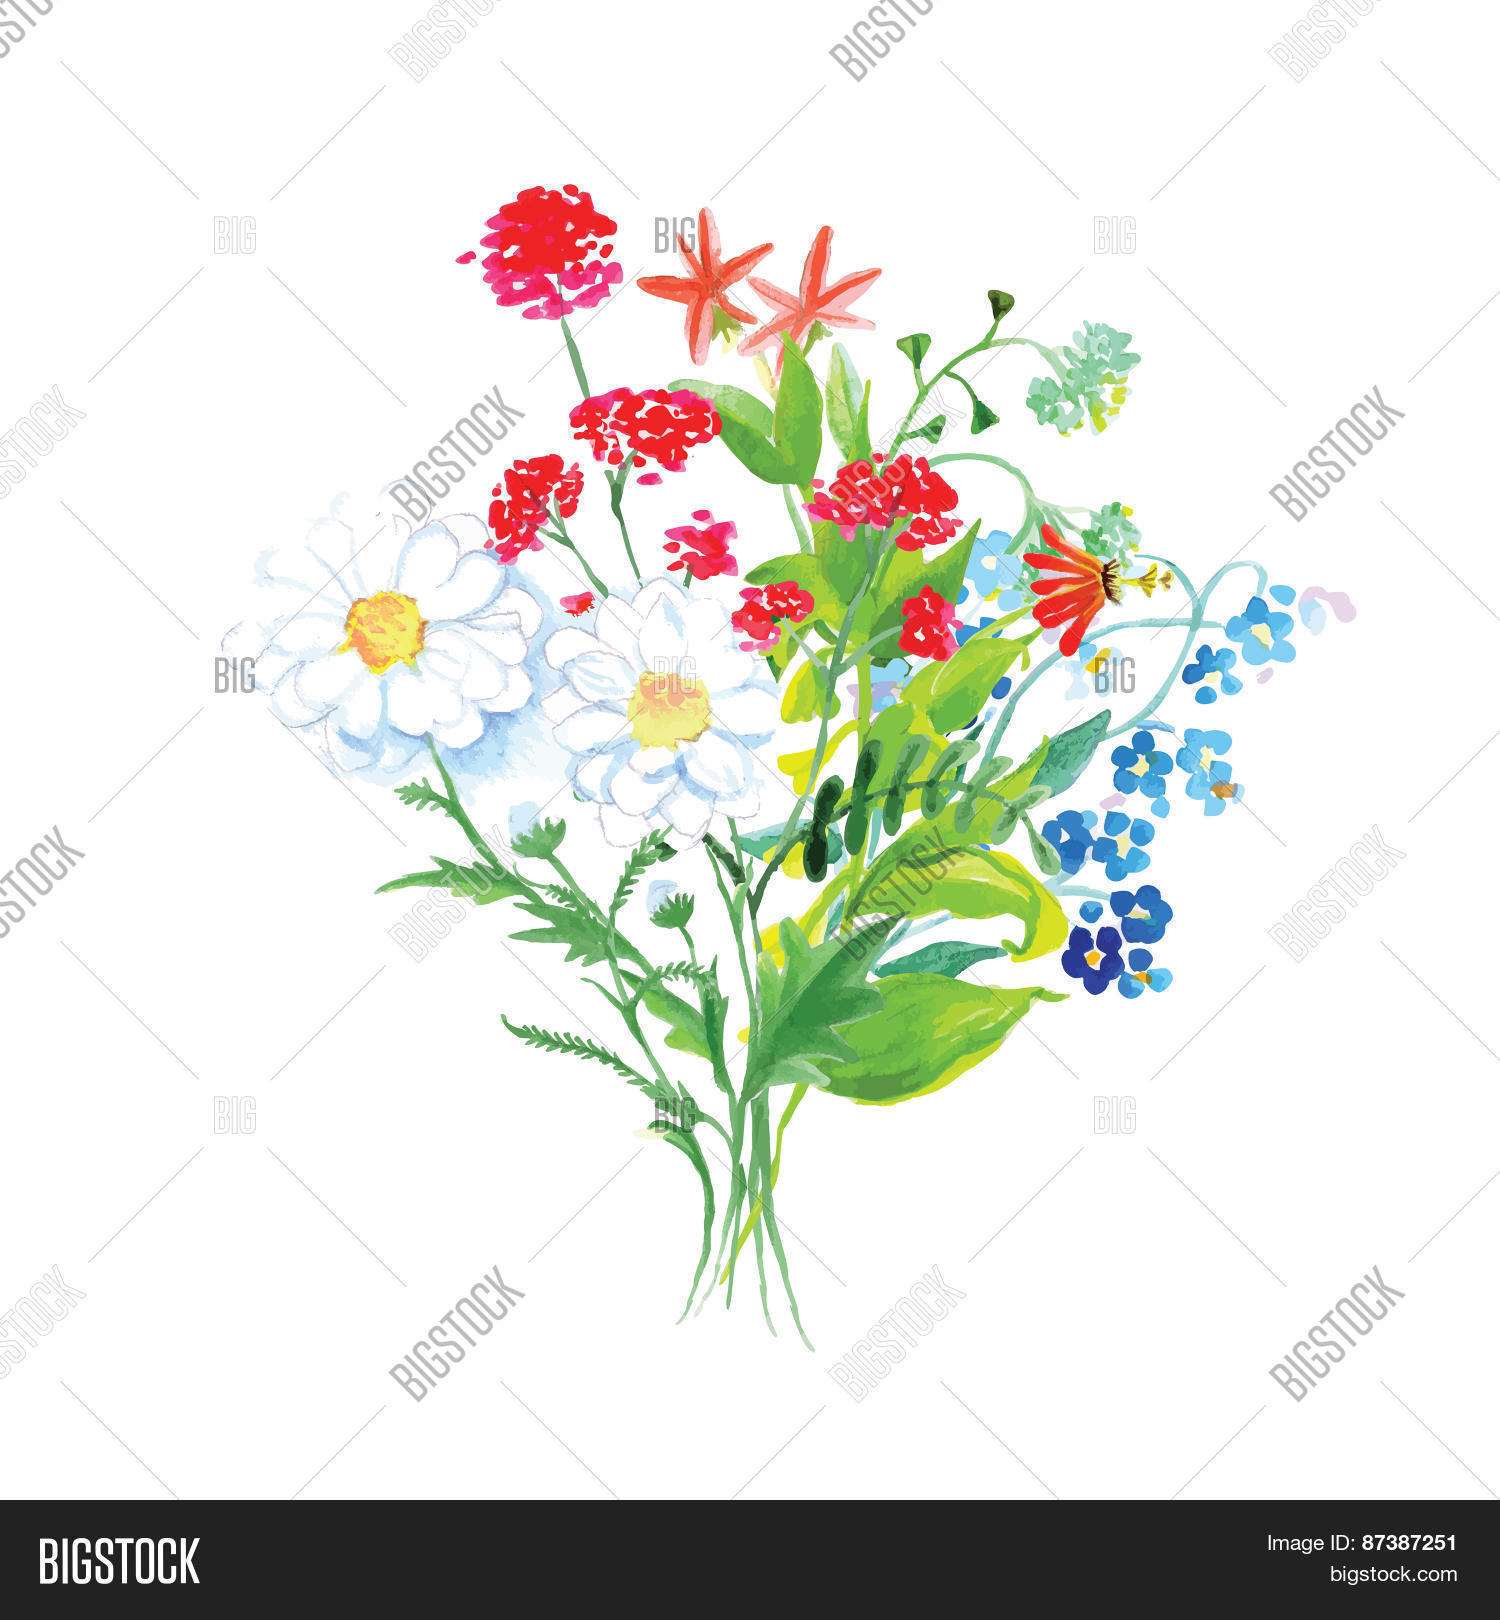 Wildflowers bouquet vector photo free trial bigstock wildflowers bouquet vector design set izmirmasajfo